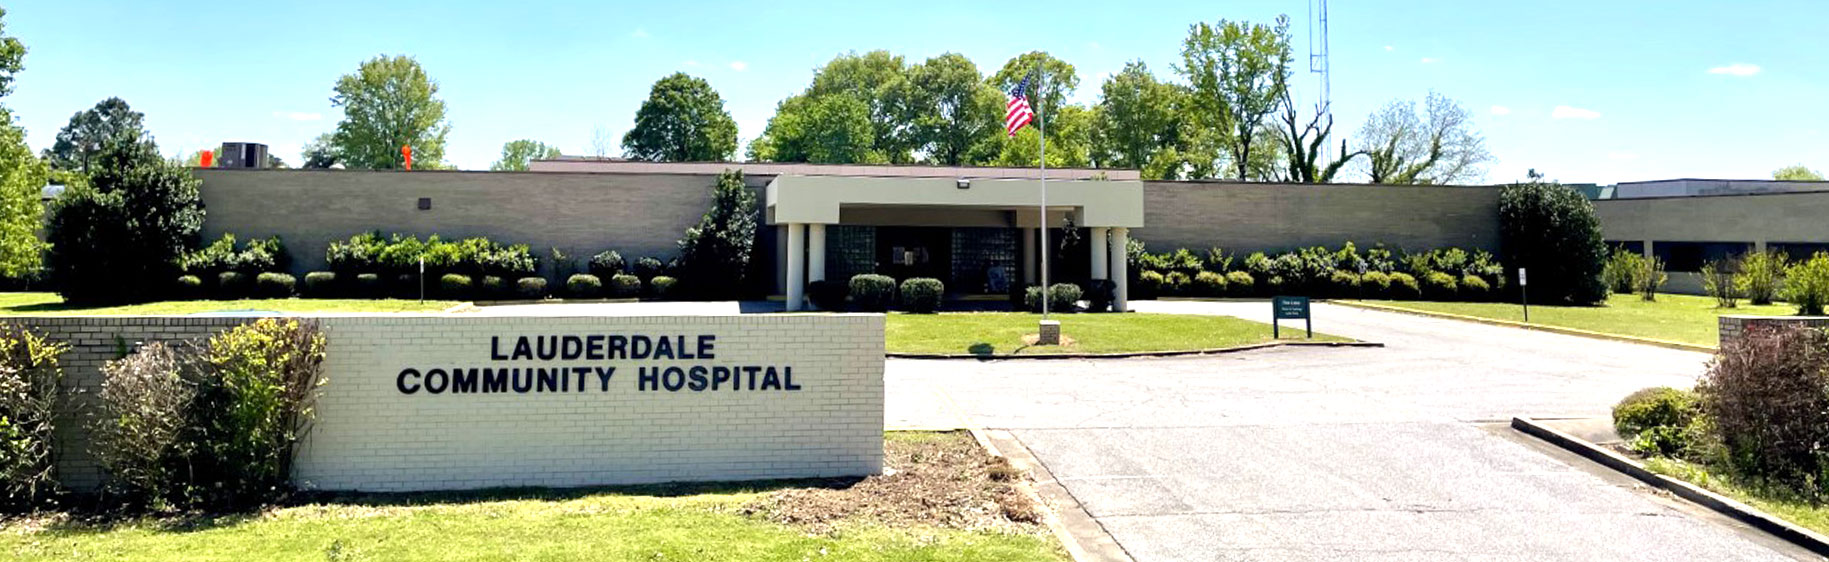 Front picture of Lauderdale Community Hospital